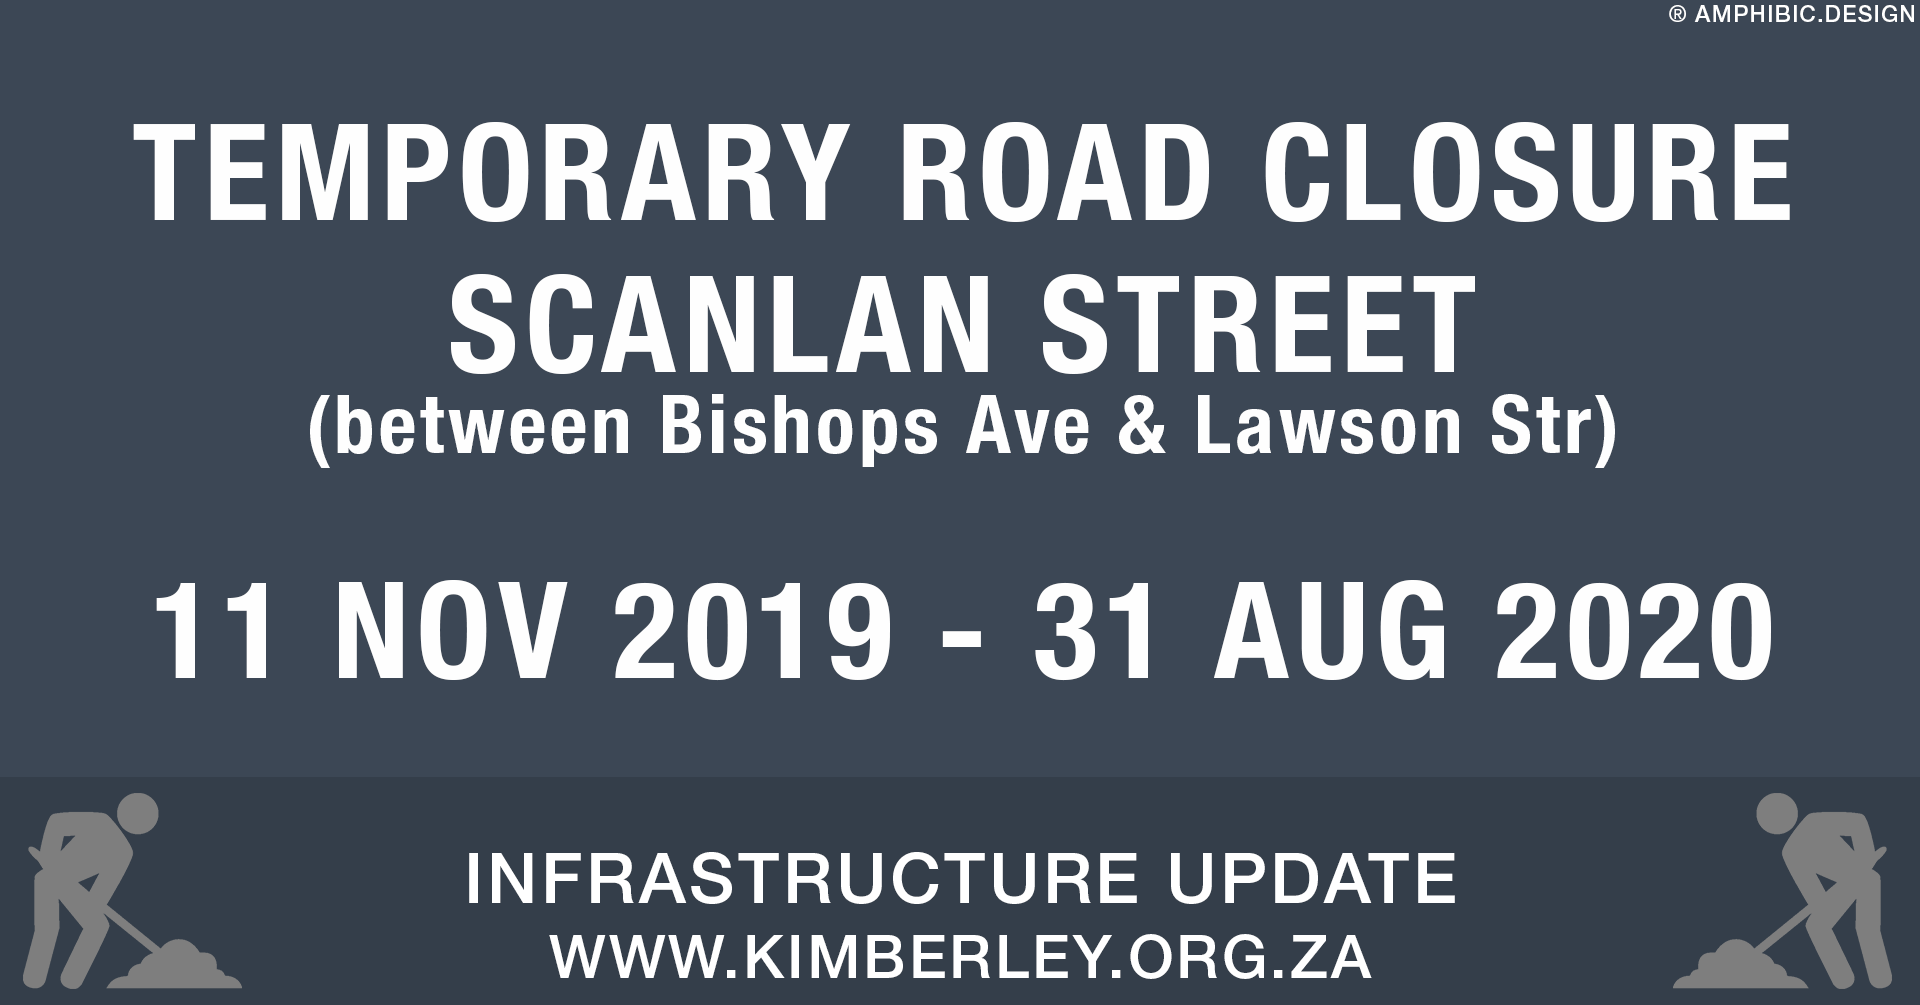 TEMP_ROAD_CLOSURE-Scanlan_Street-20191111